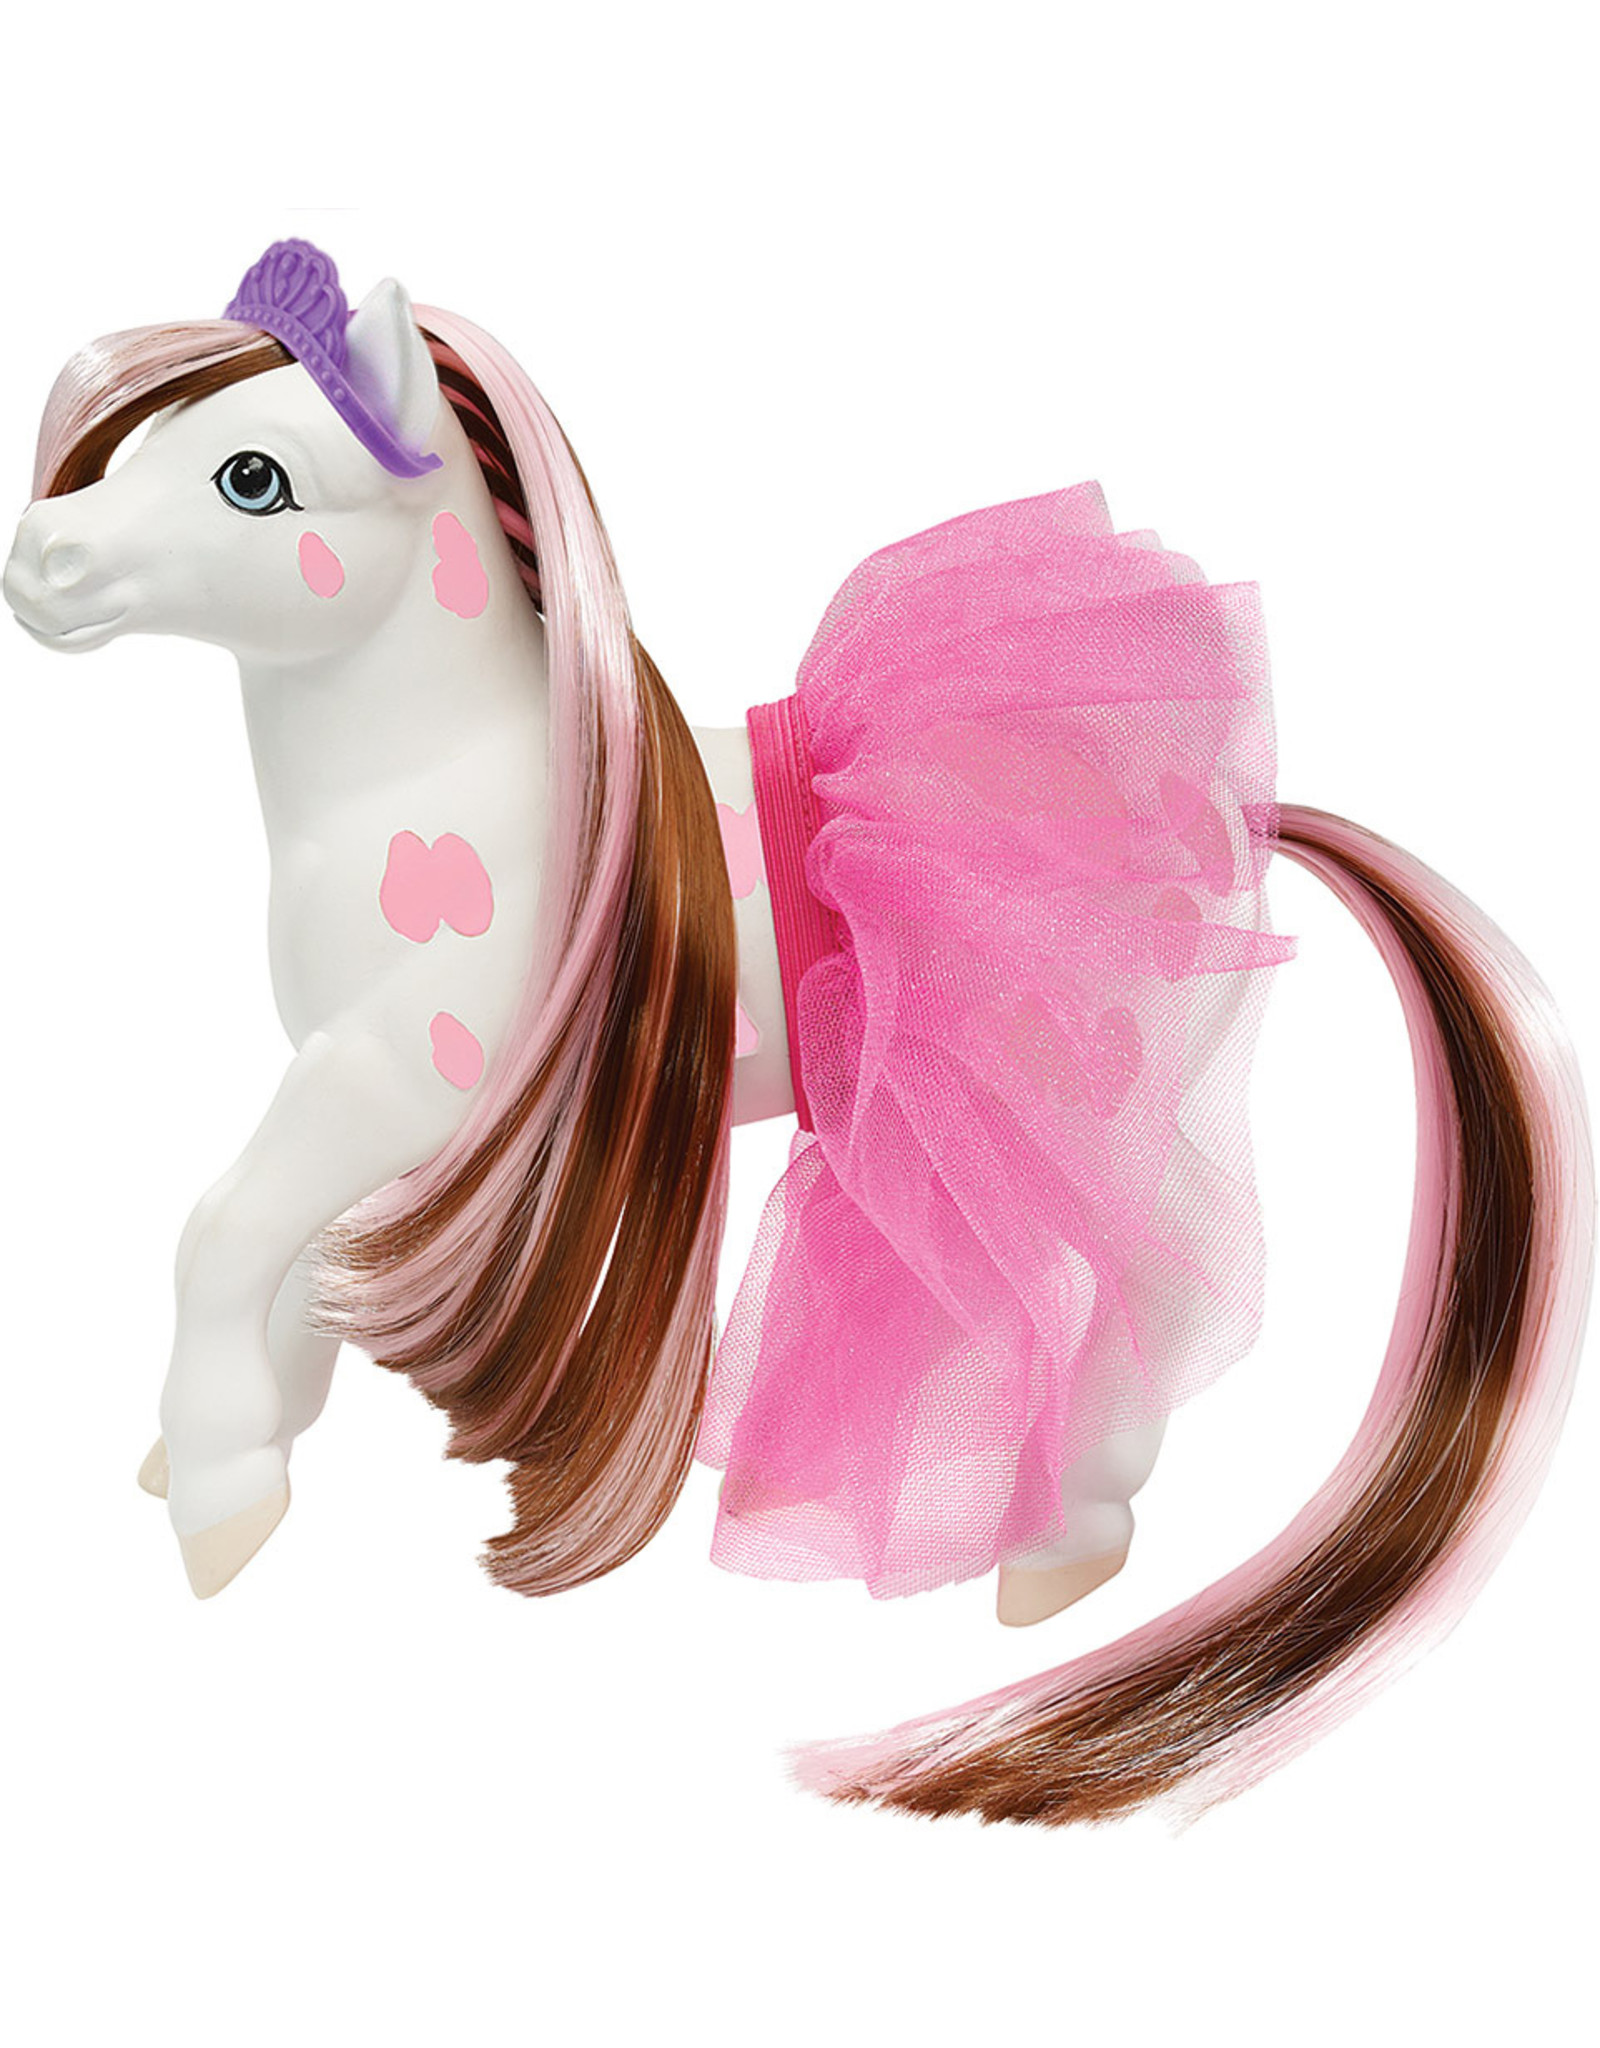 Breyer Blossom The Ballerina - Color Changing Bath Toy